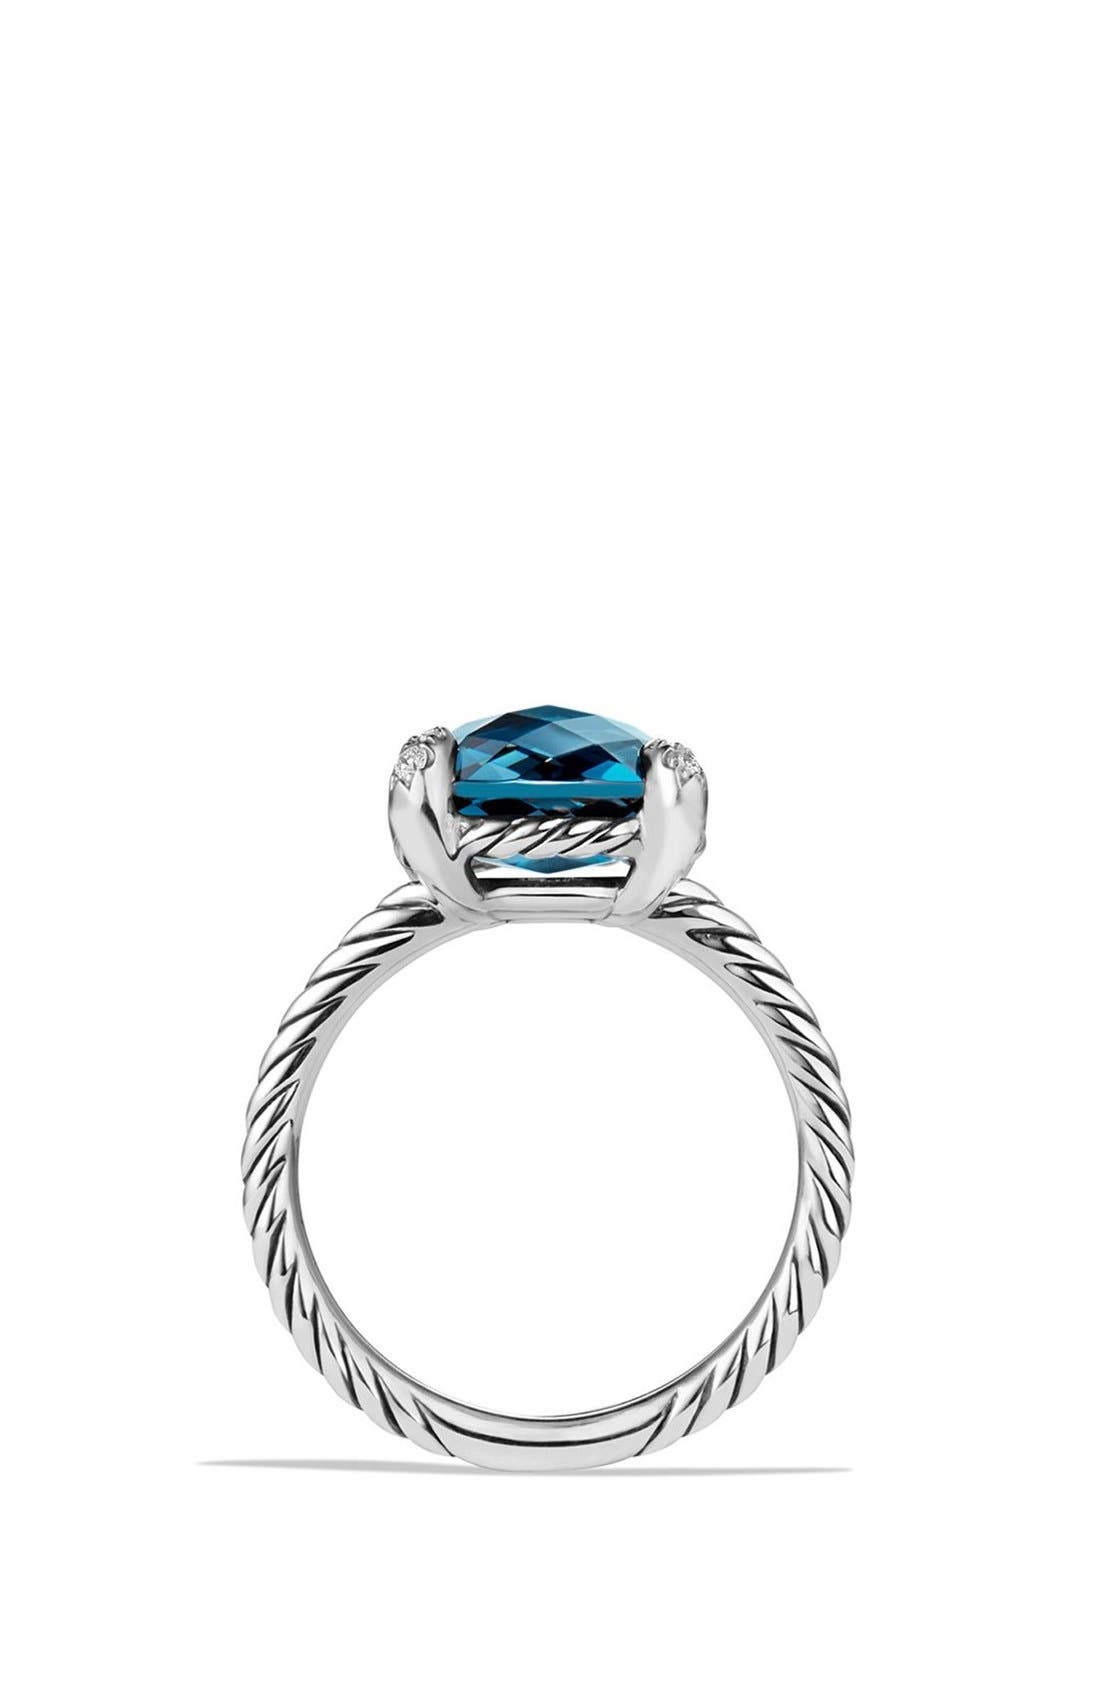 'Châtelaine' Ring with Semiprecious Stone and Diamonds,                             Alternate thumbnail 4, color,                             Silver/ Hampton Blue Topaz